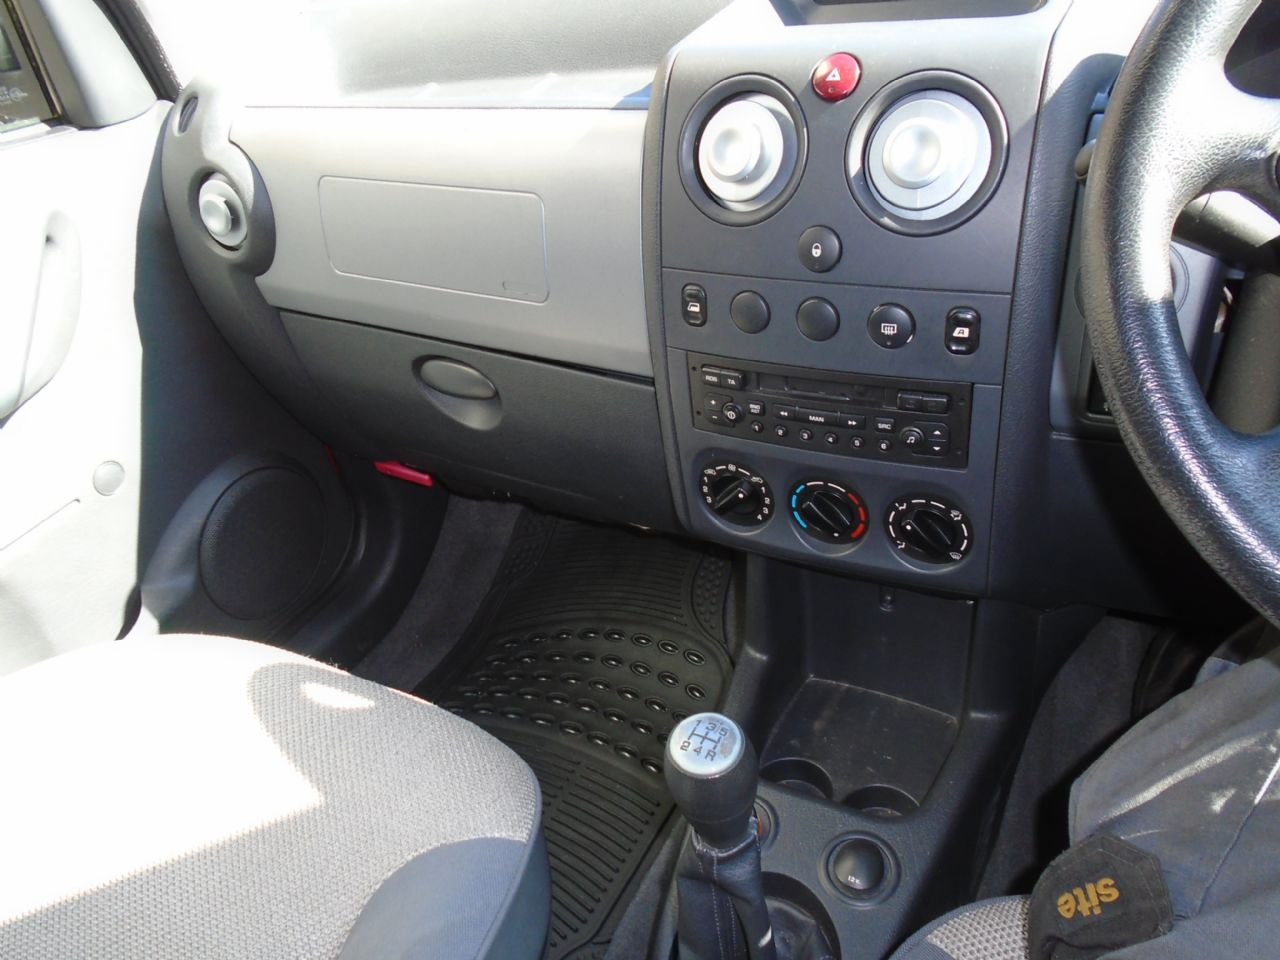 CITROEN BERLINGO 1.9D Multispace - Picture 7